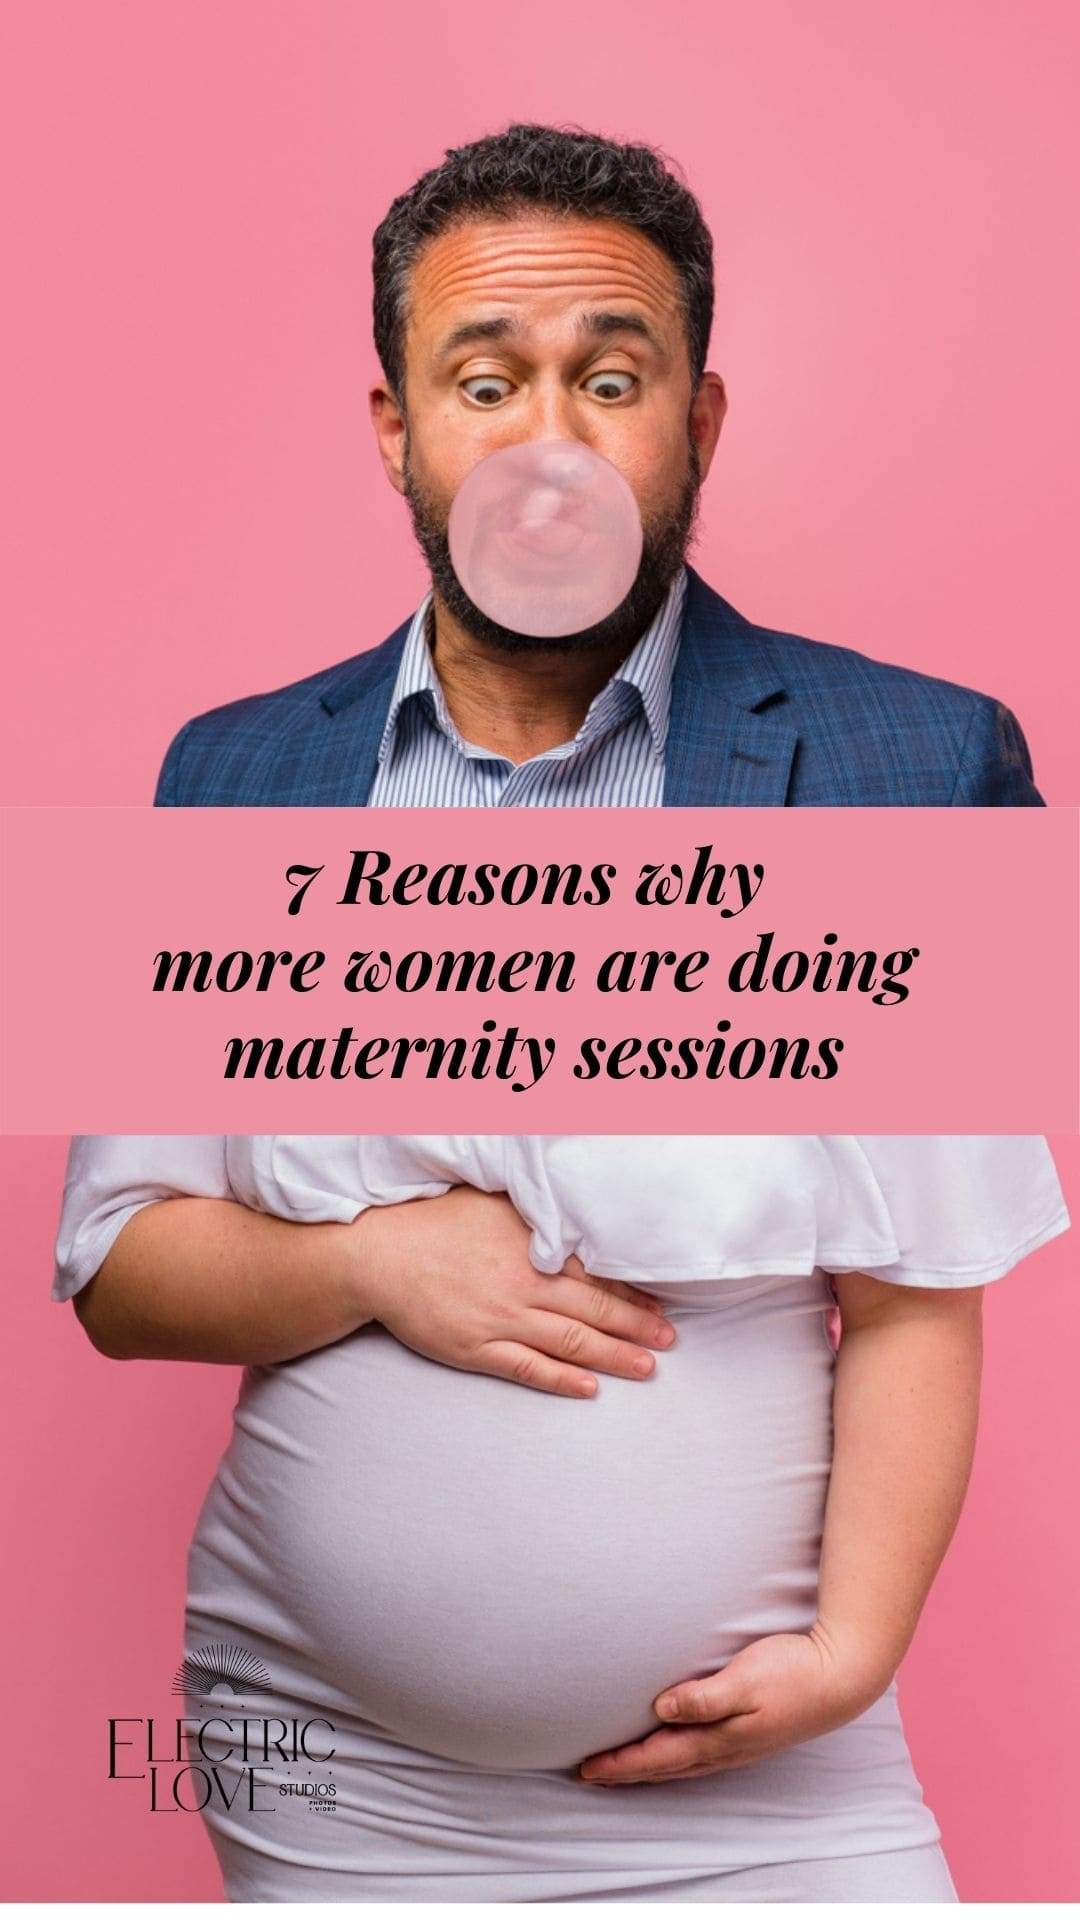 7-reasons-why-more-women-are-doing-maternity-sessions